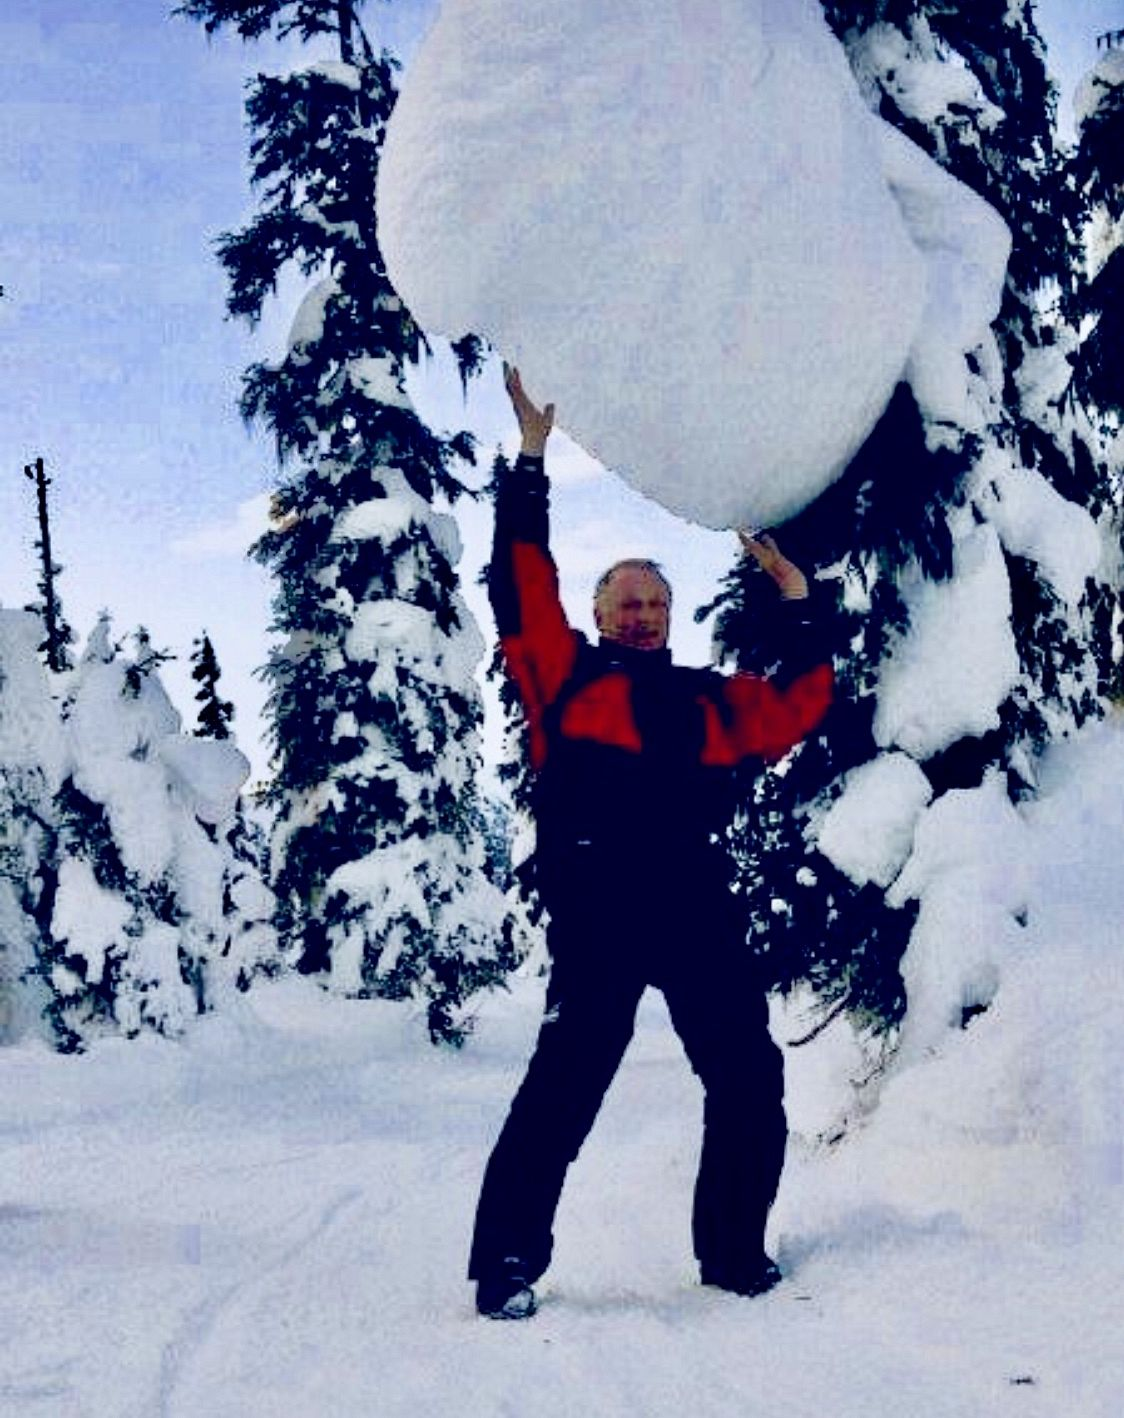 A very large snow ball !